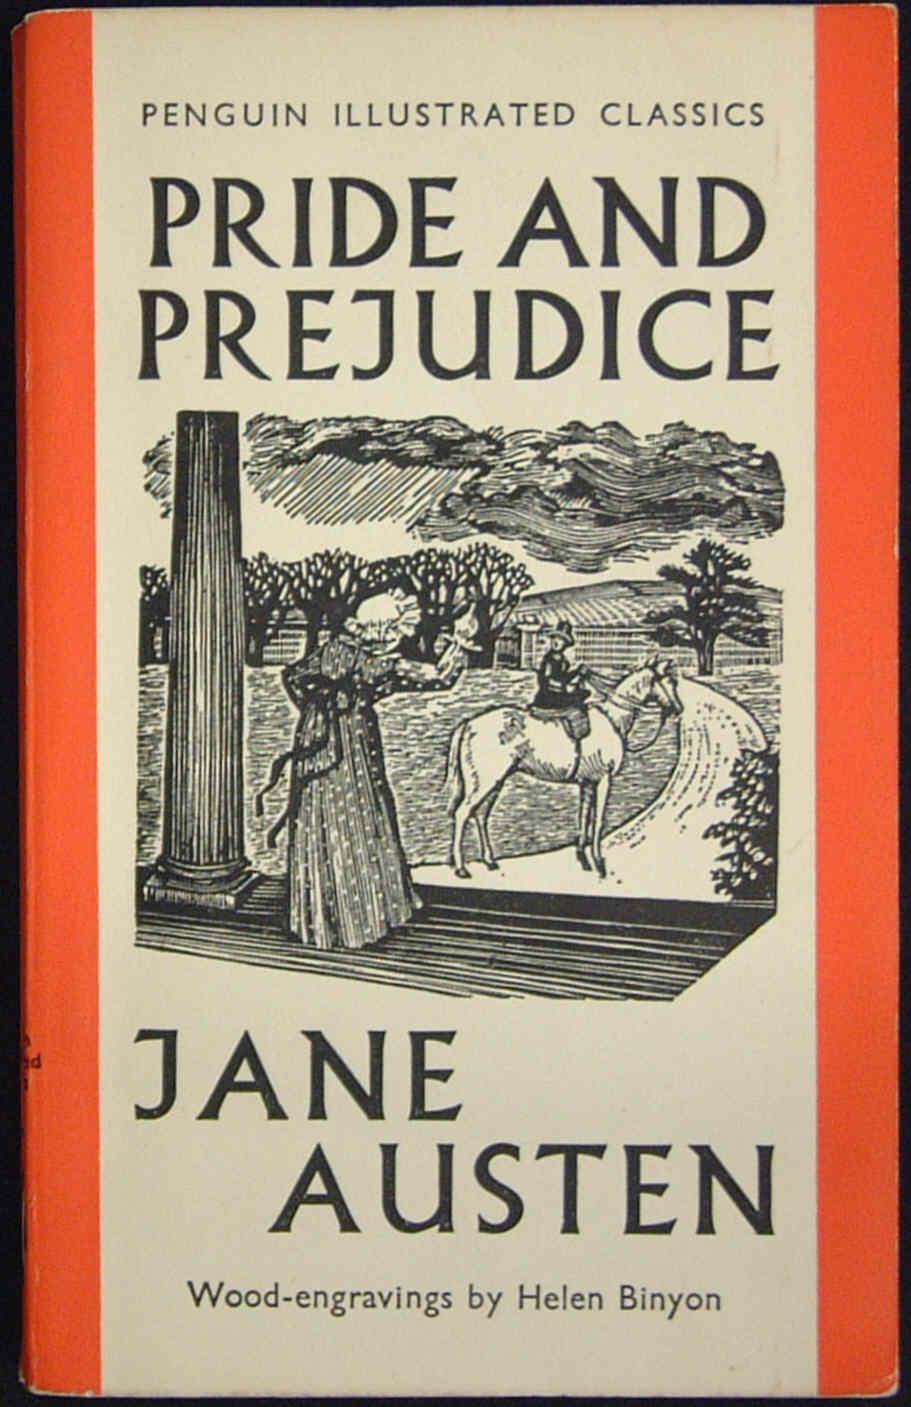 Penguin Classic Book Covers : Penguin first editions early edition